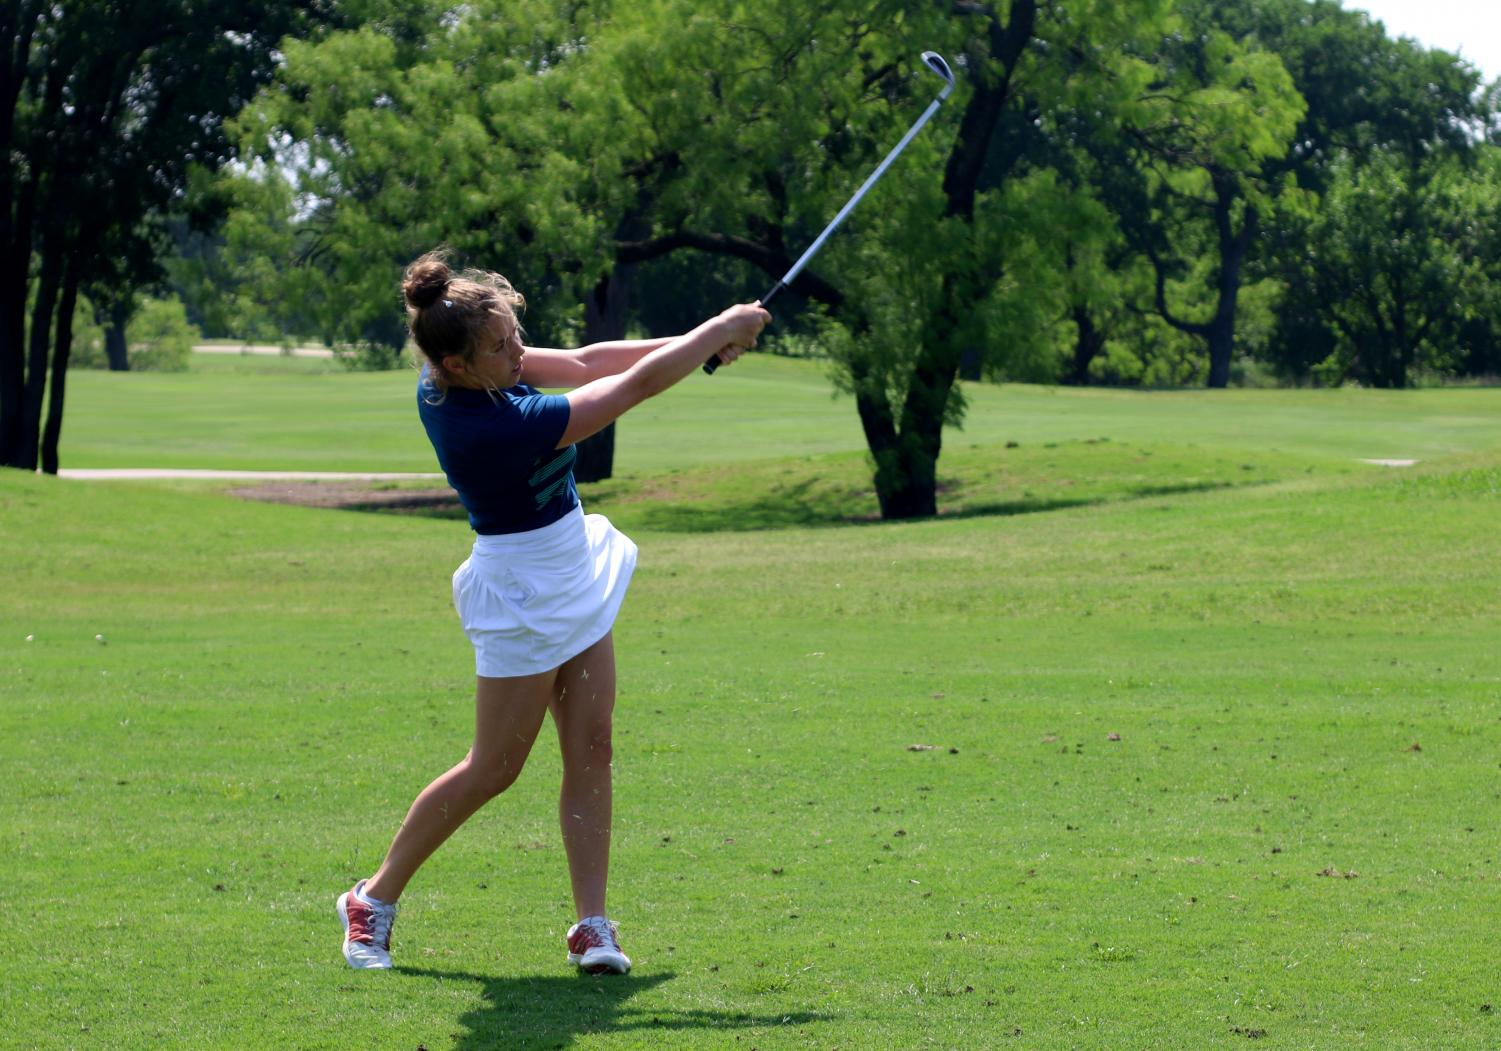 Senior Gracie Tribolet follows through after hitting the golf ball at a practice prior to the state tournament. This year was Tribolet's fourth year on the golf team